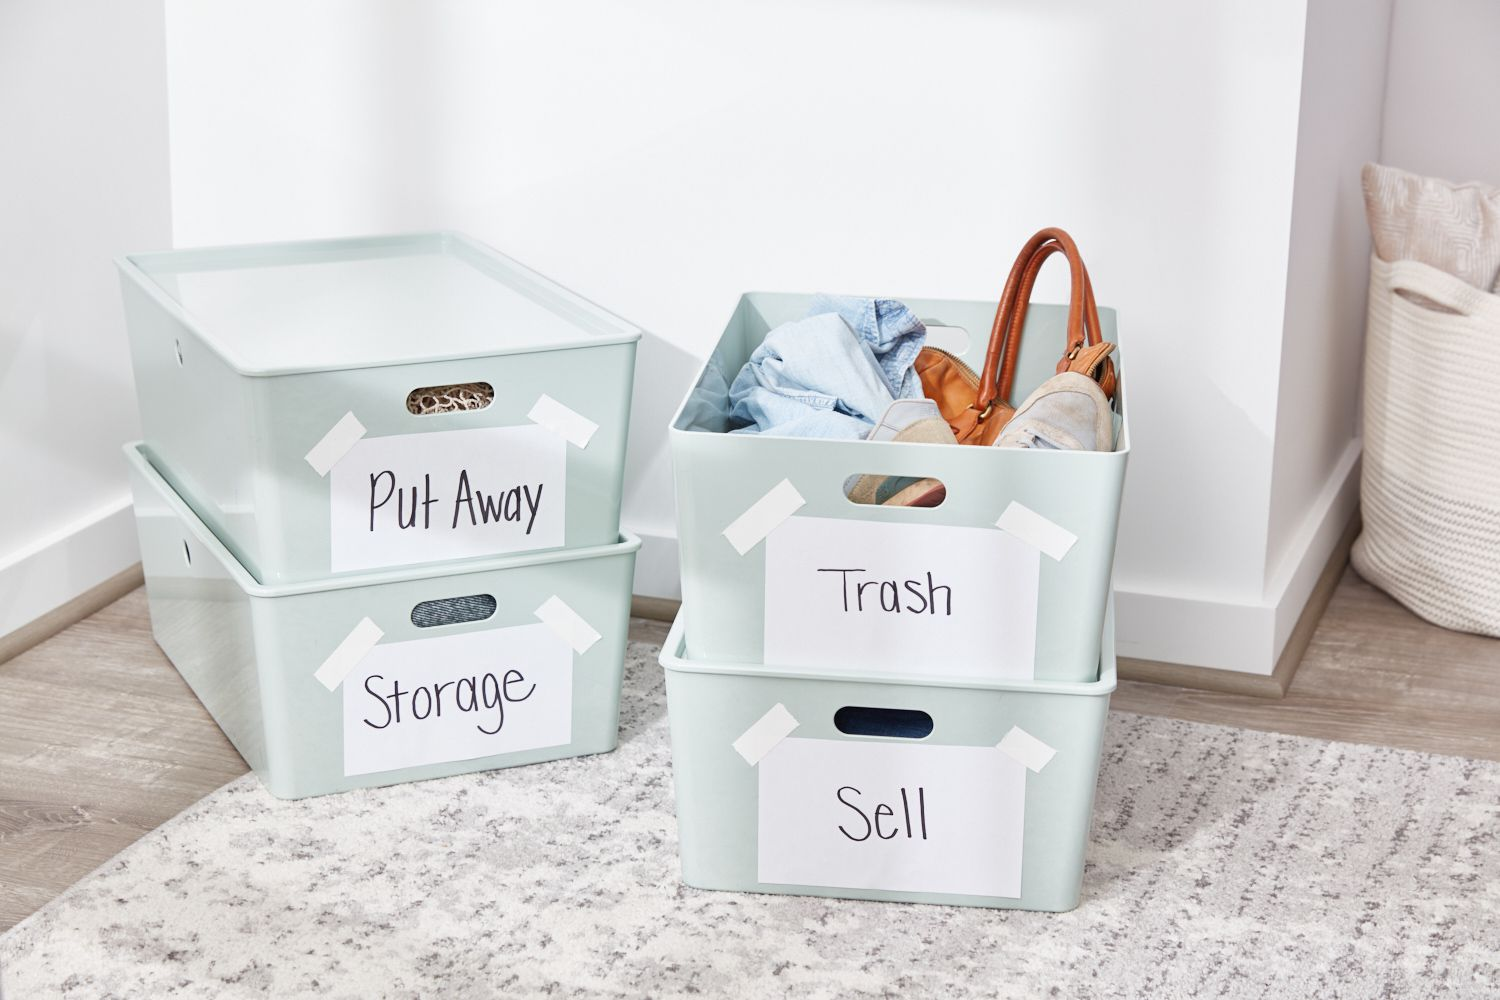 Organized clothing containers